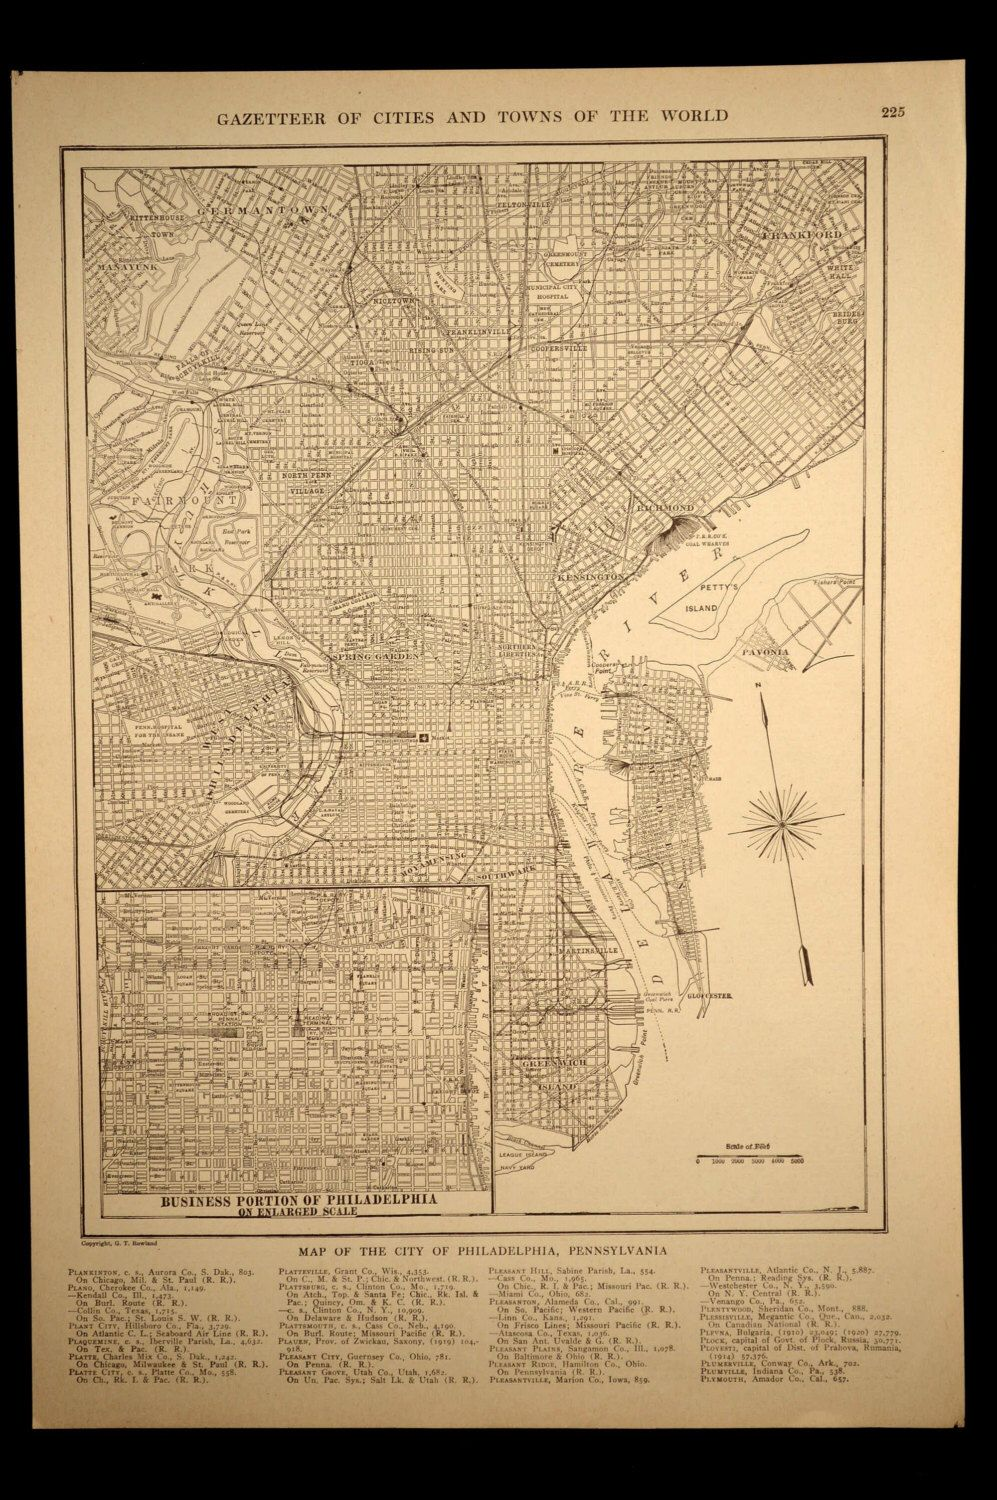 Philadelphia Map of Philadelphia Street Map Wall Art Decor ... on city of dover pa, map of 19124, map of center city pa, map of pa towns, map of west philly pa, map of cities surrounding philadelphia pennsylvania, map of phila metro area, new york city on a map of pa, road map of phila pa,